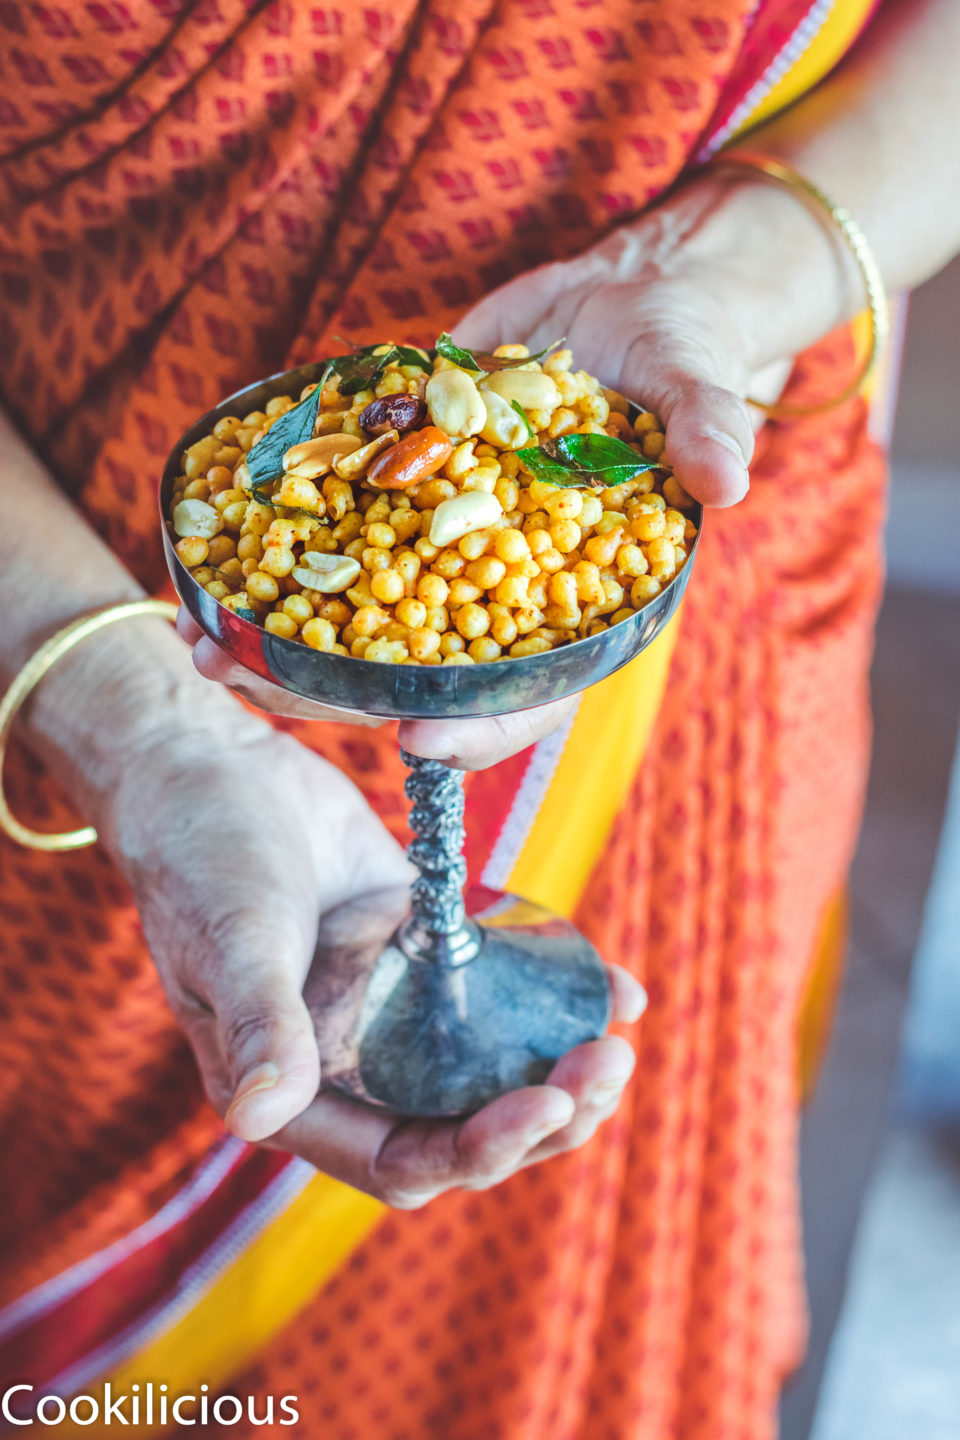 a set of hands holding a glass full of Kara Boondi Mixture